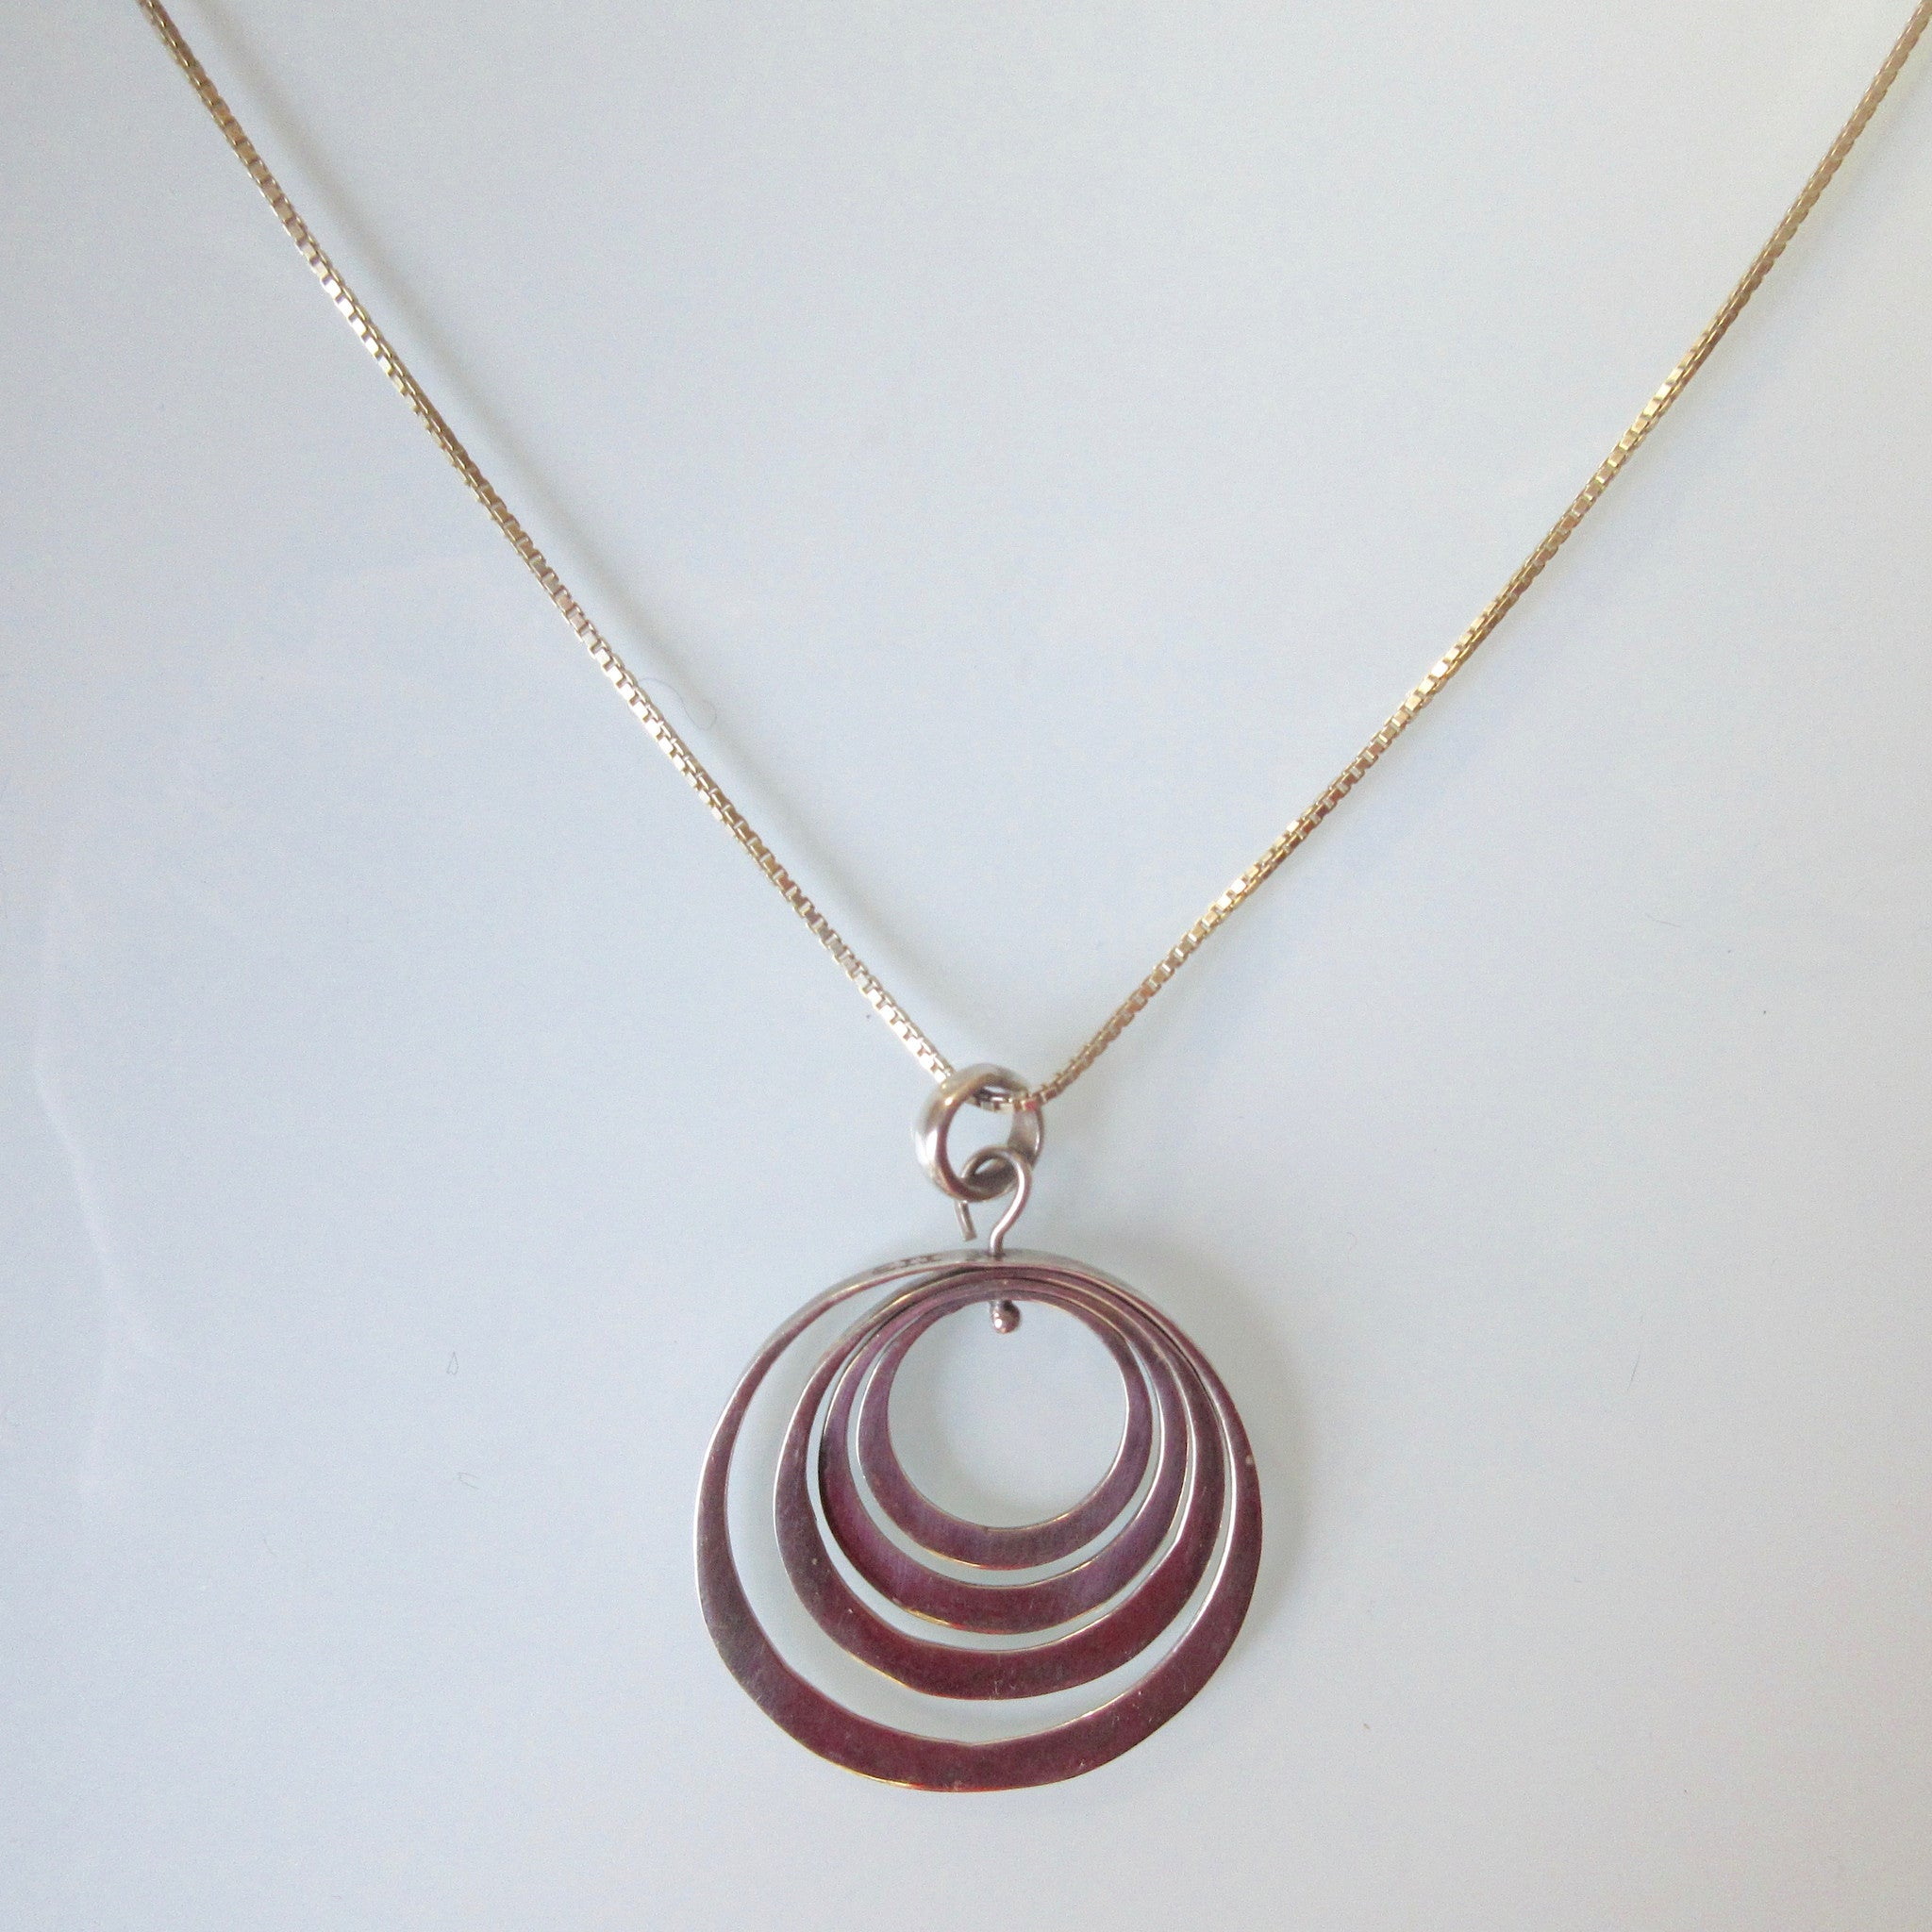 Circles Set Pendant on Sterling Silver Chain 19""